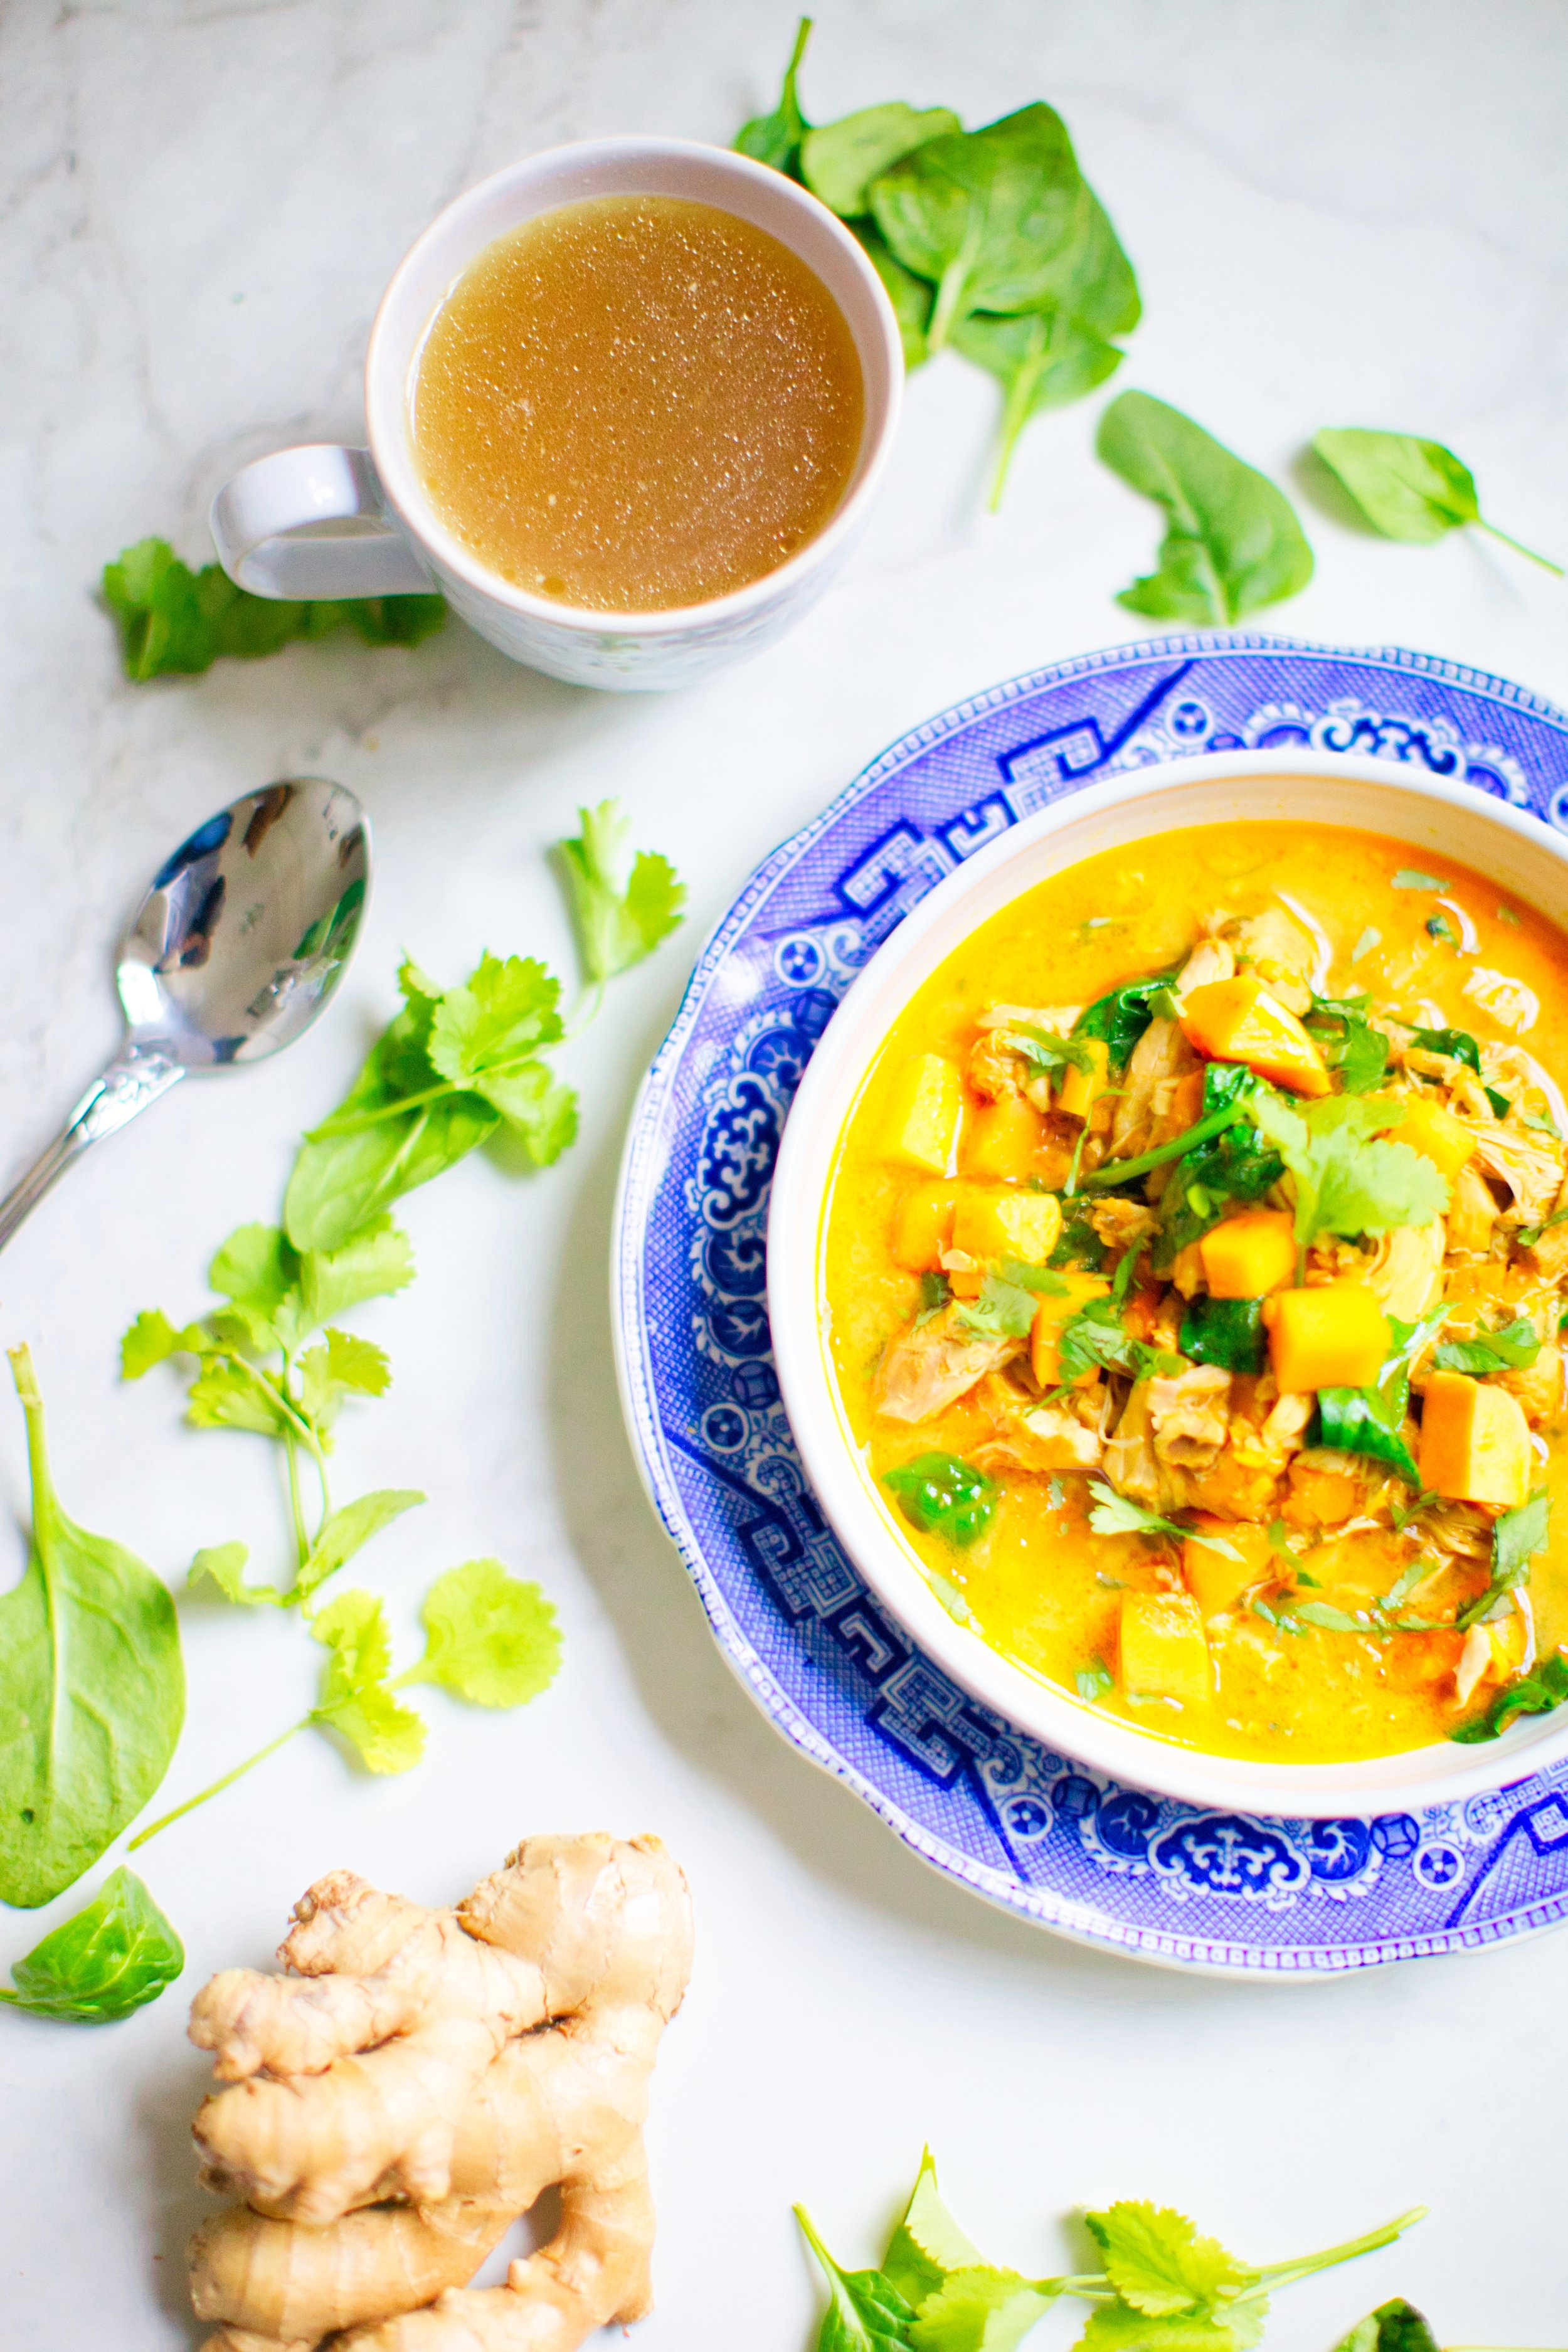 A mug of bone broth and a coconut curry strew. Good for you and yum!